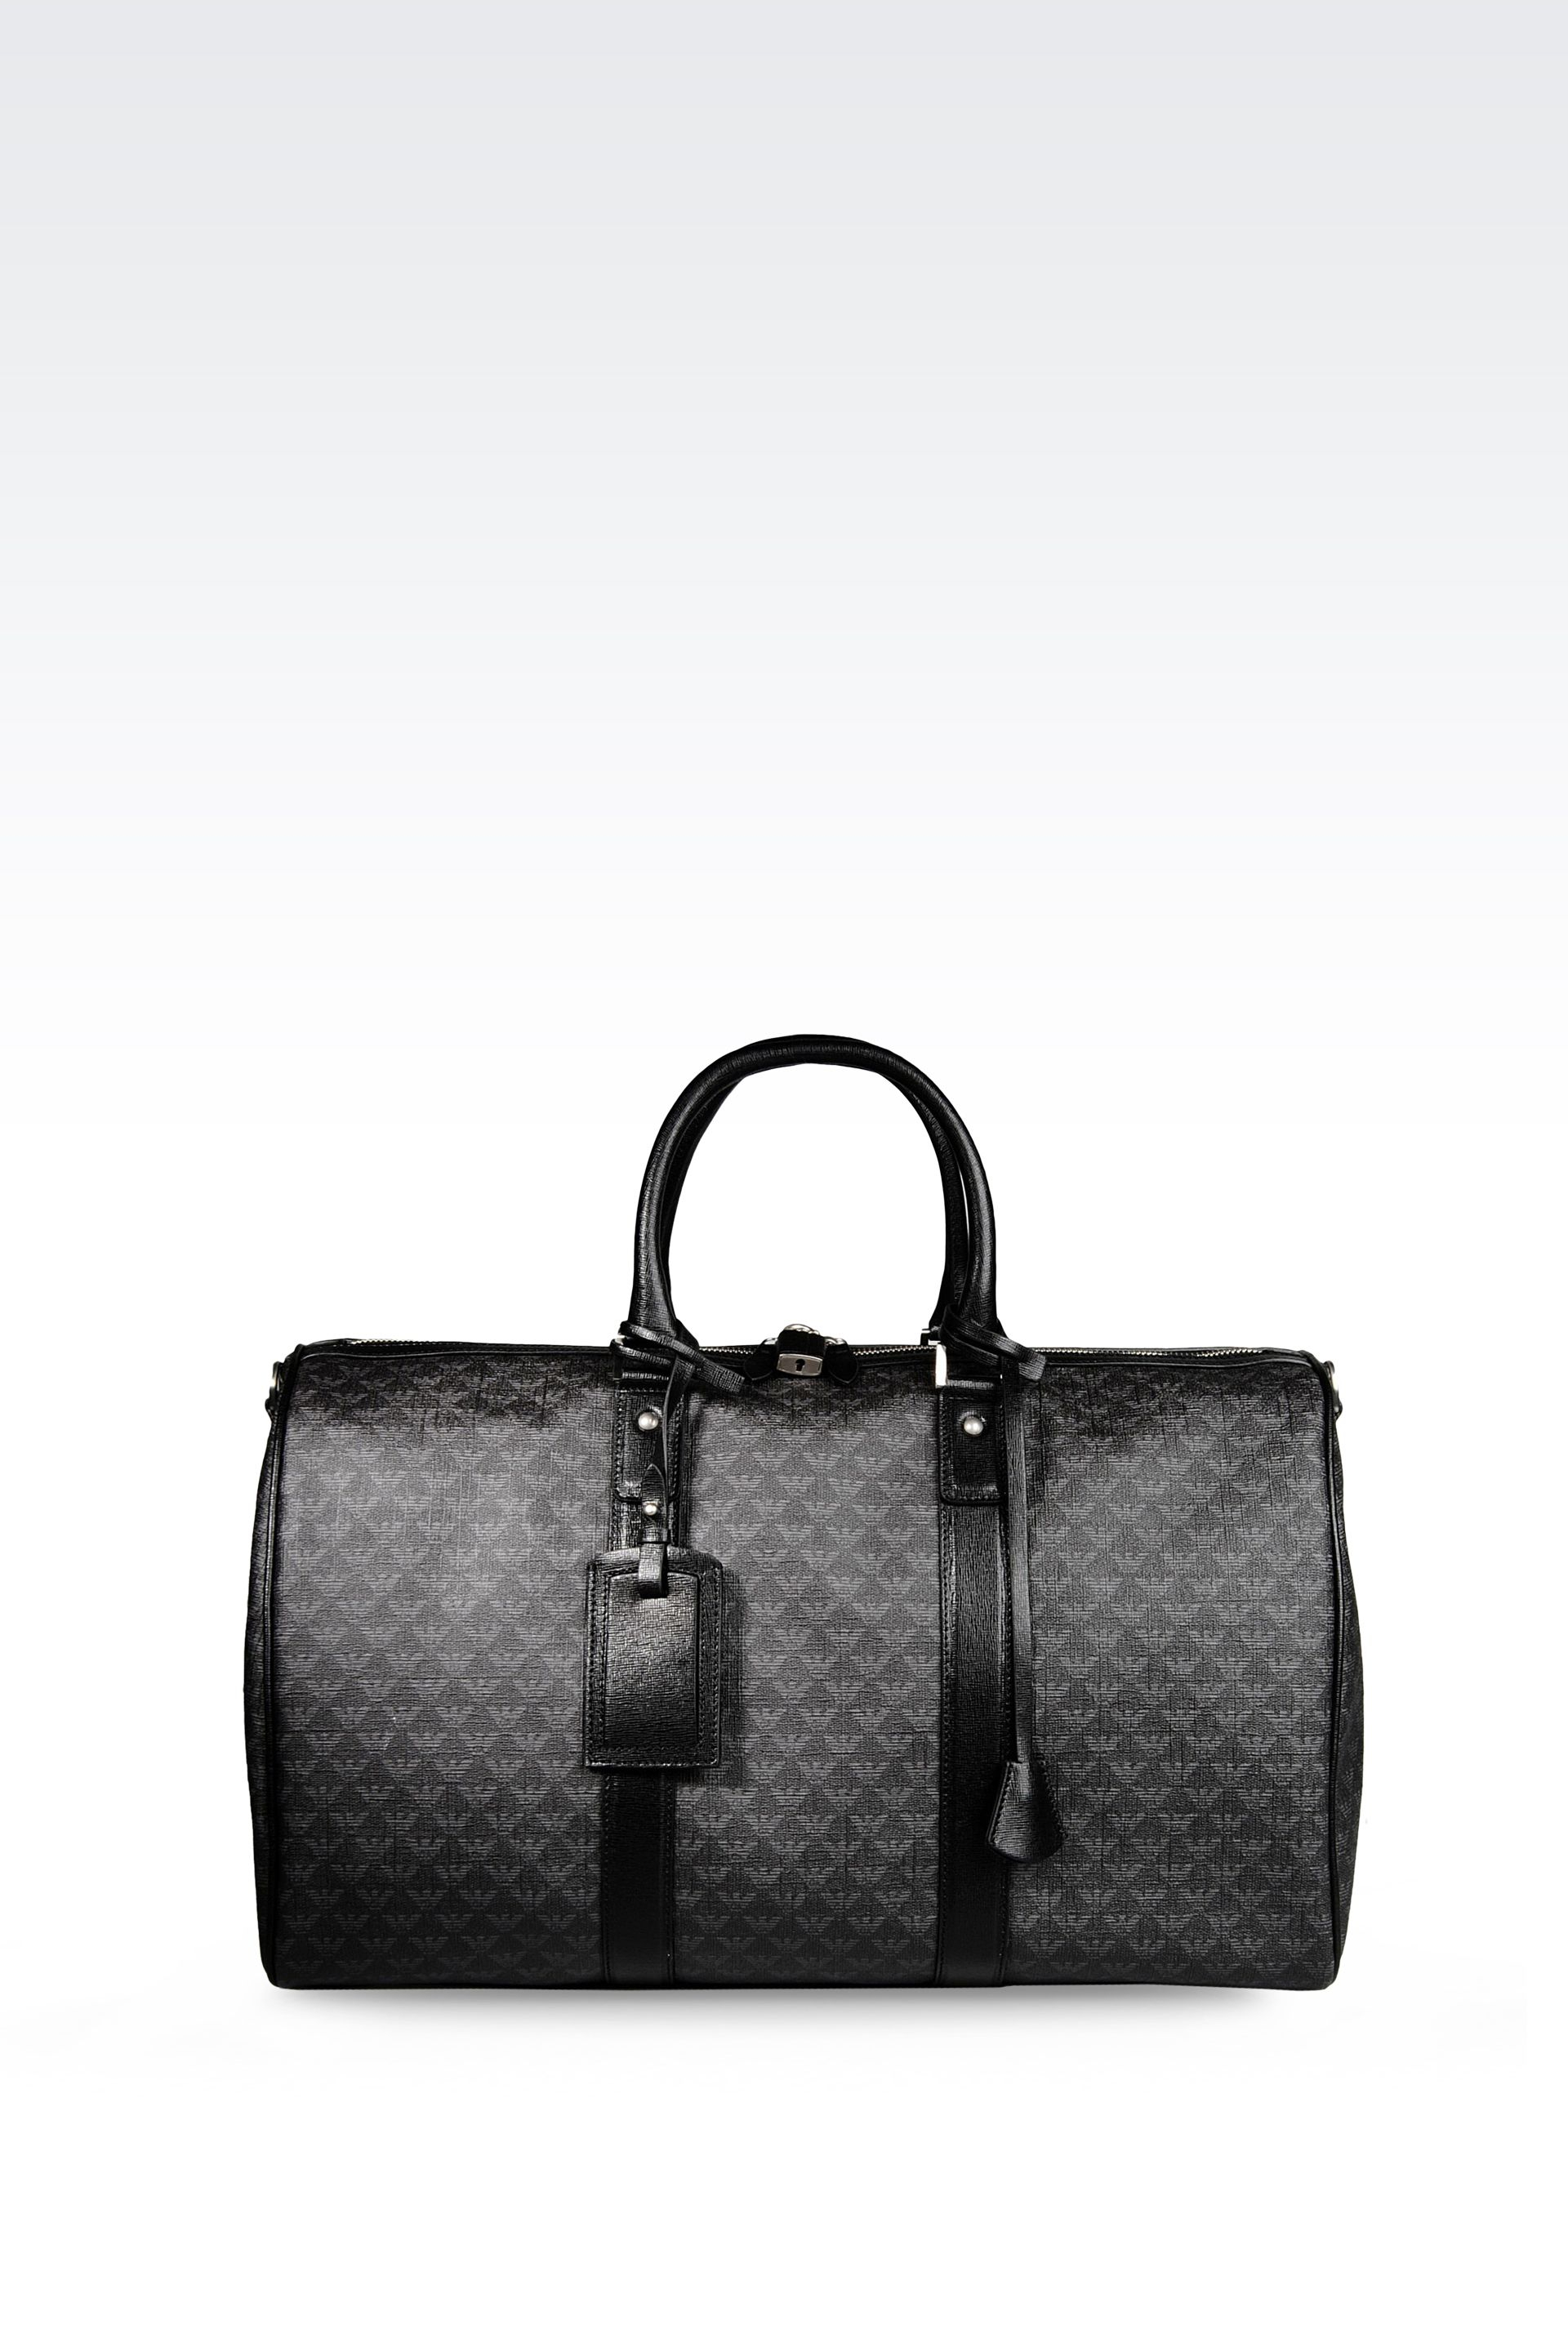 a87b9a586a11 Lyst - Emporio Armani Briefcase In Logo Patterned Pvc in Black for Men